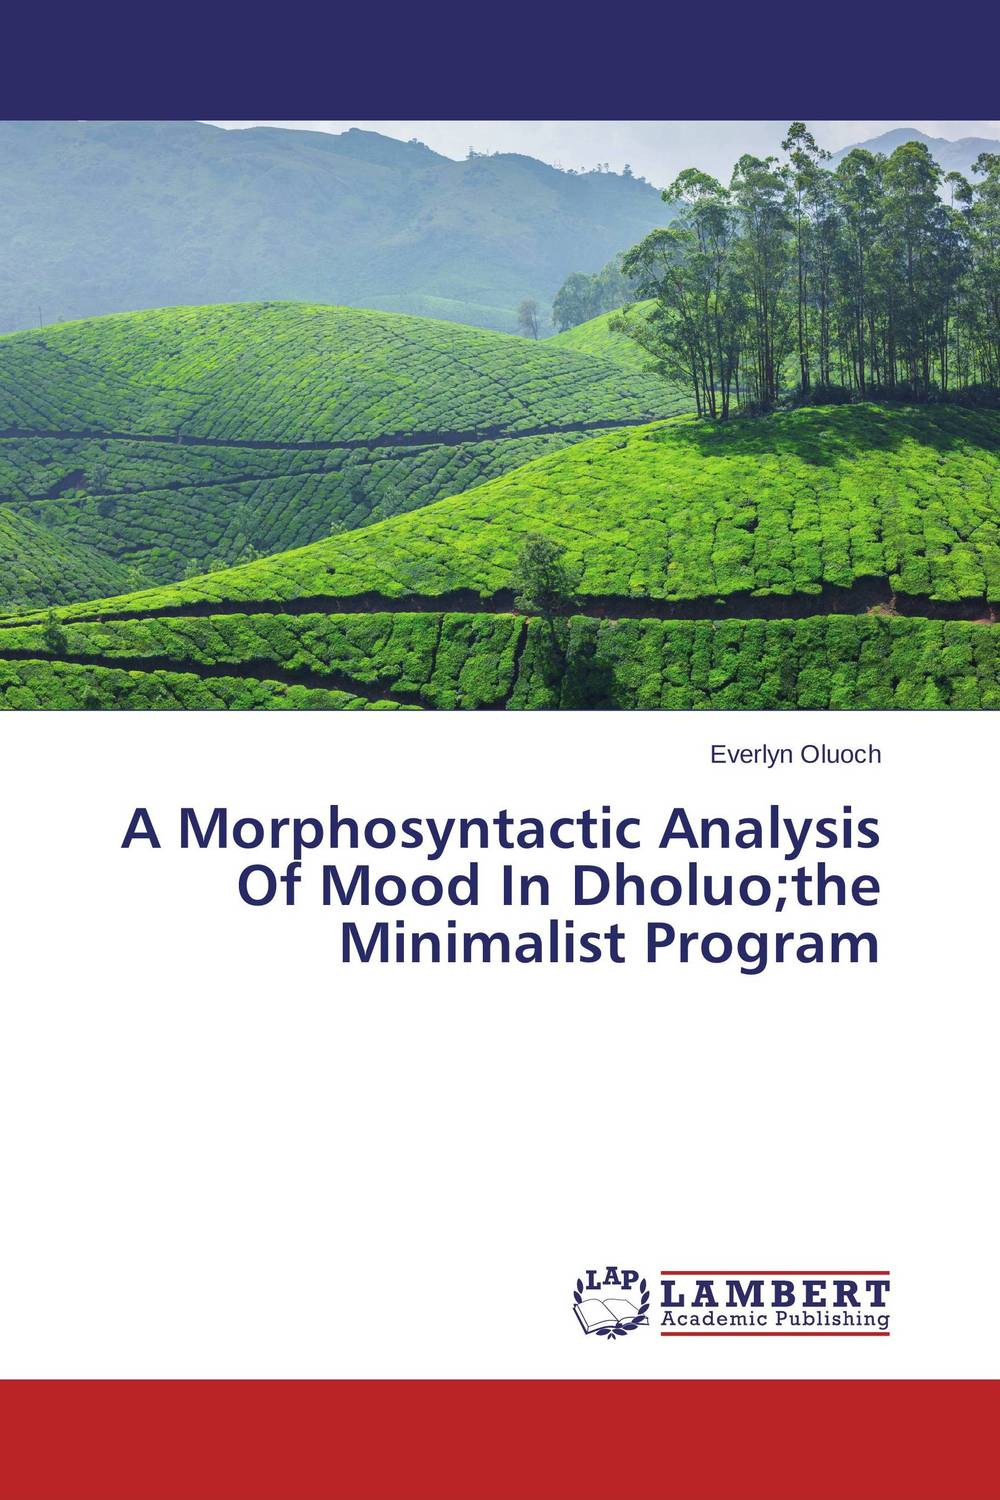 A Morphosyntactic Analysis Of Mood In Dholuo;the Minimalist Program driven to distraction